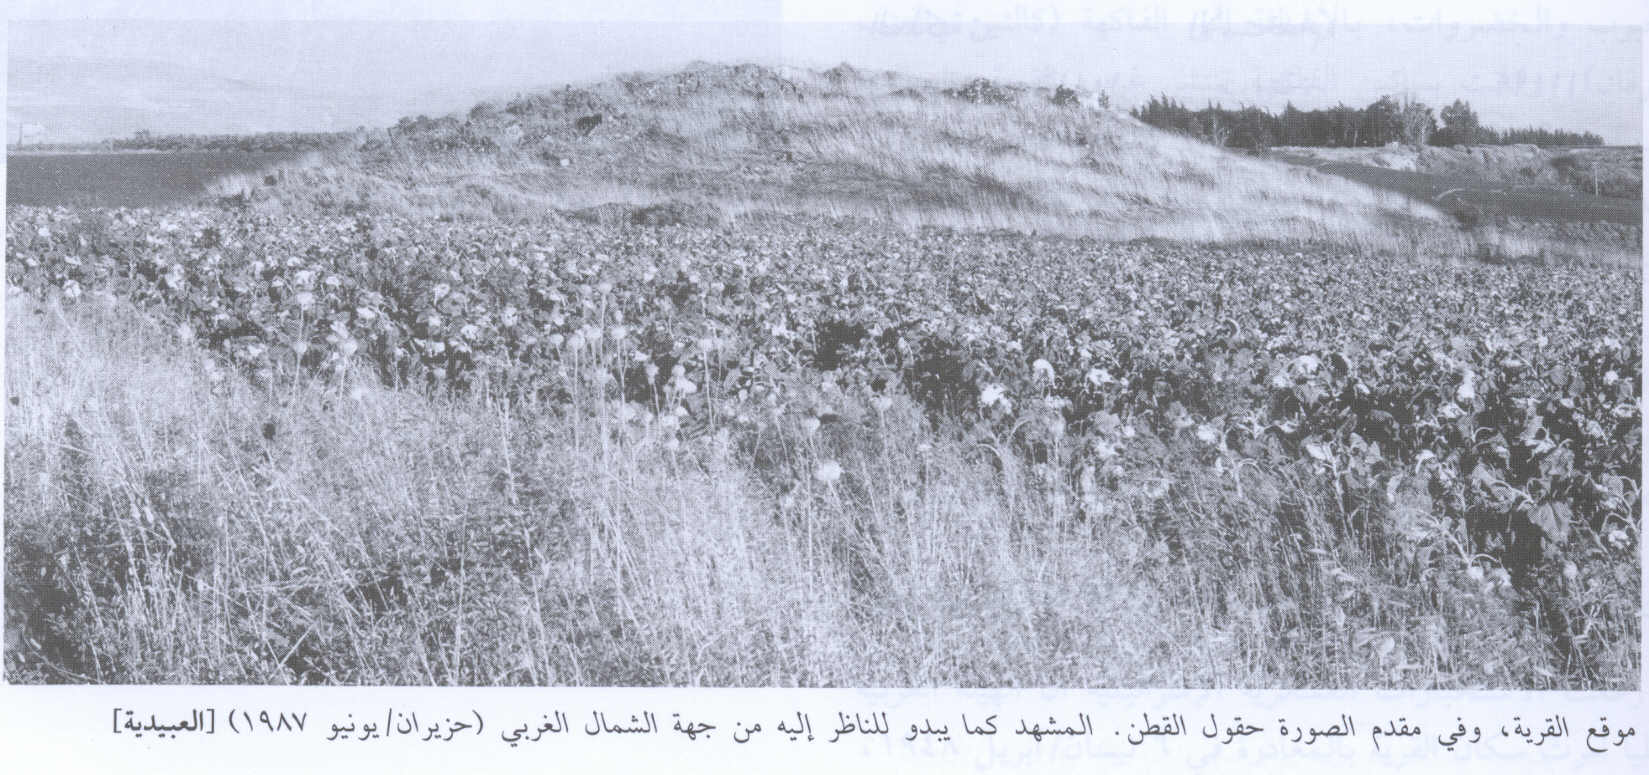 al-'Ubaydiyya - العبيدية : General view of the village site looking northwest, 1987